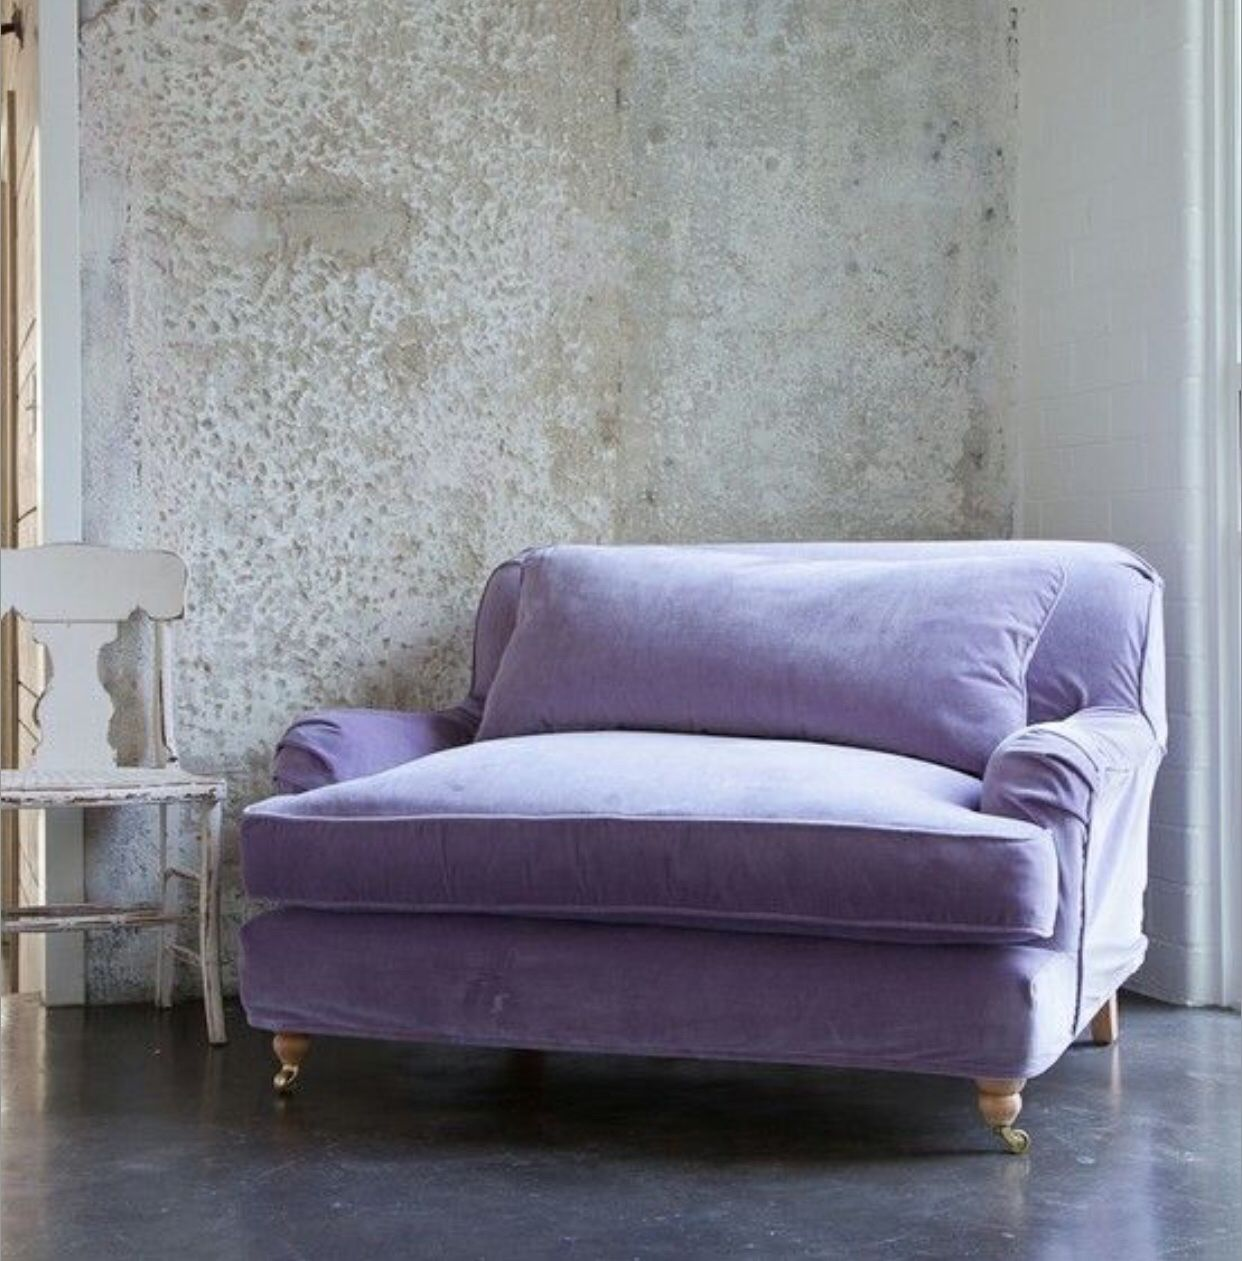 Big Sofa Chair Lilac Loveseat Lavender Violet Purple Aubergine